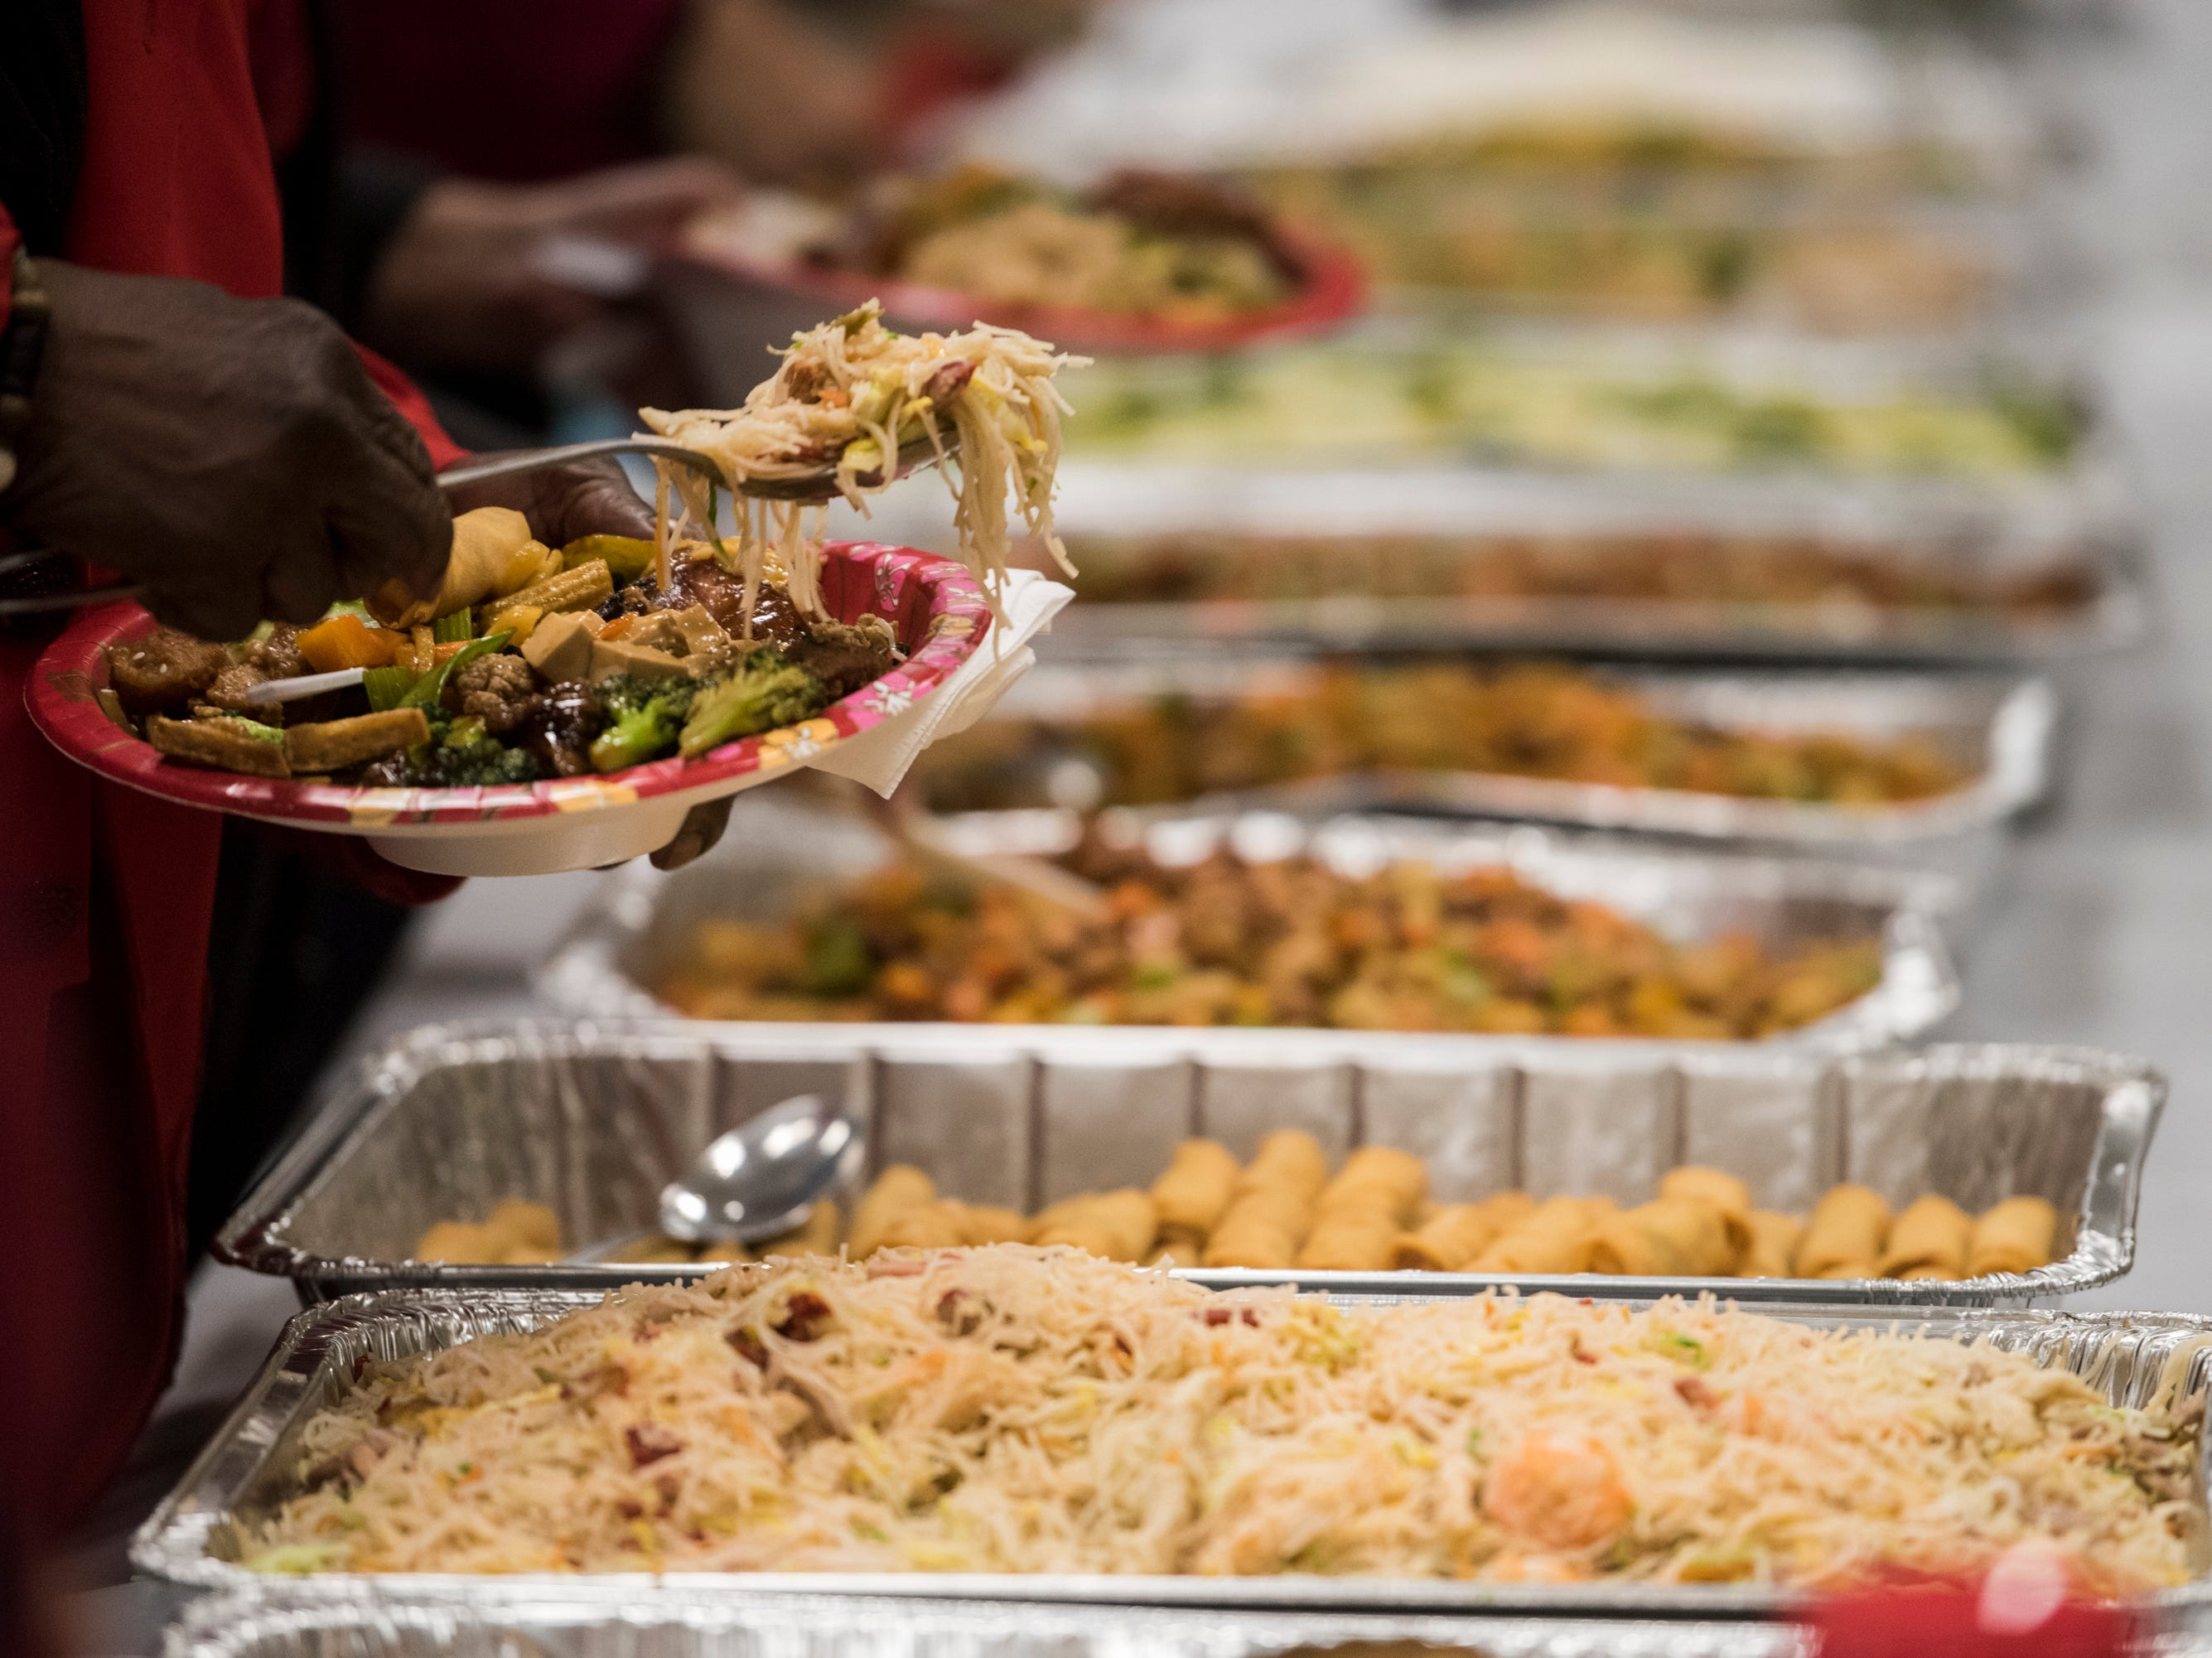 Food is served during the Central Alabama Association of Chinese 2019 Montgomery Chinese New Year festsival at Frazer Church in Montgomery, Ala., on Saturday, Feb. 9, 2019.